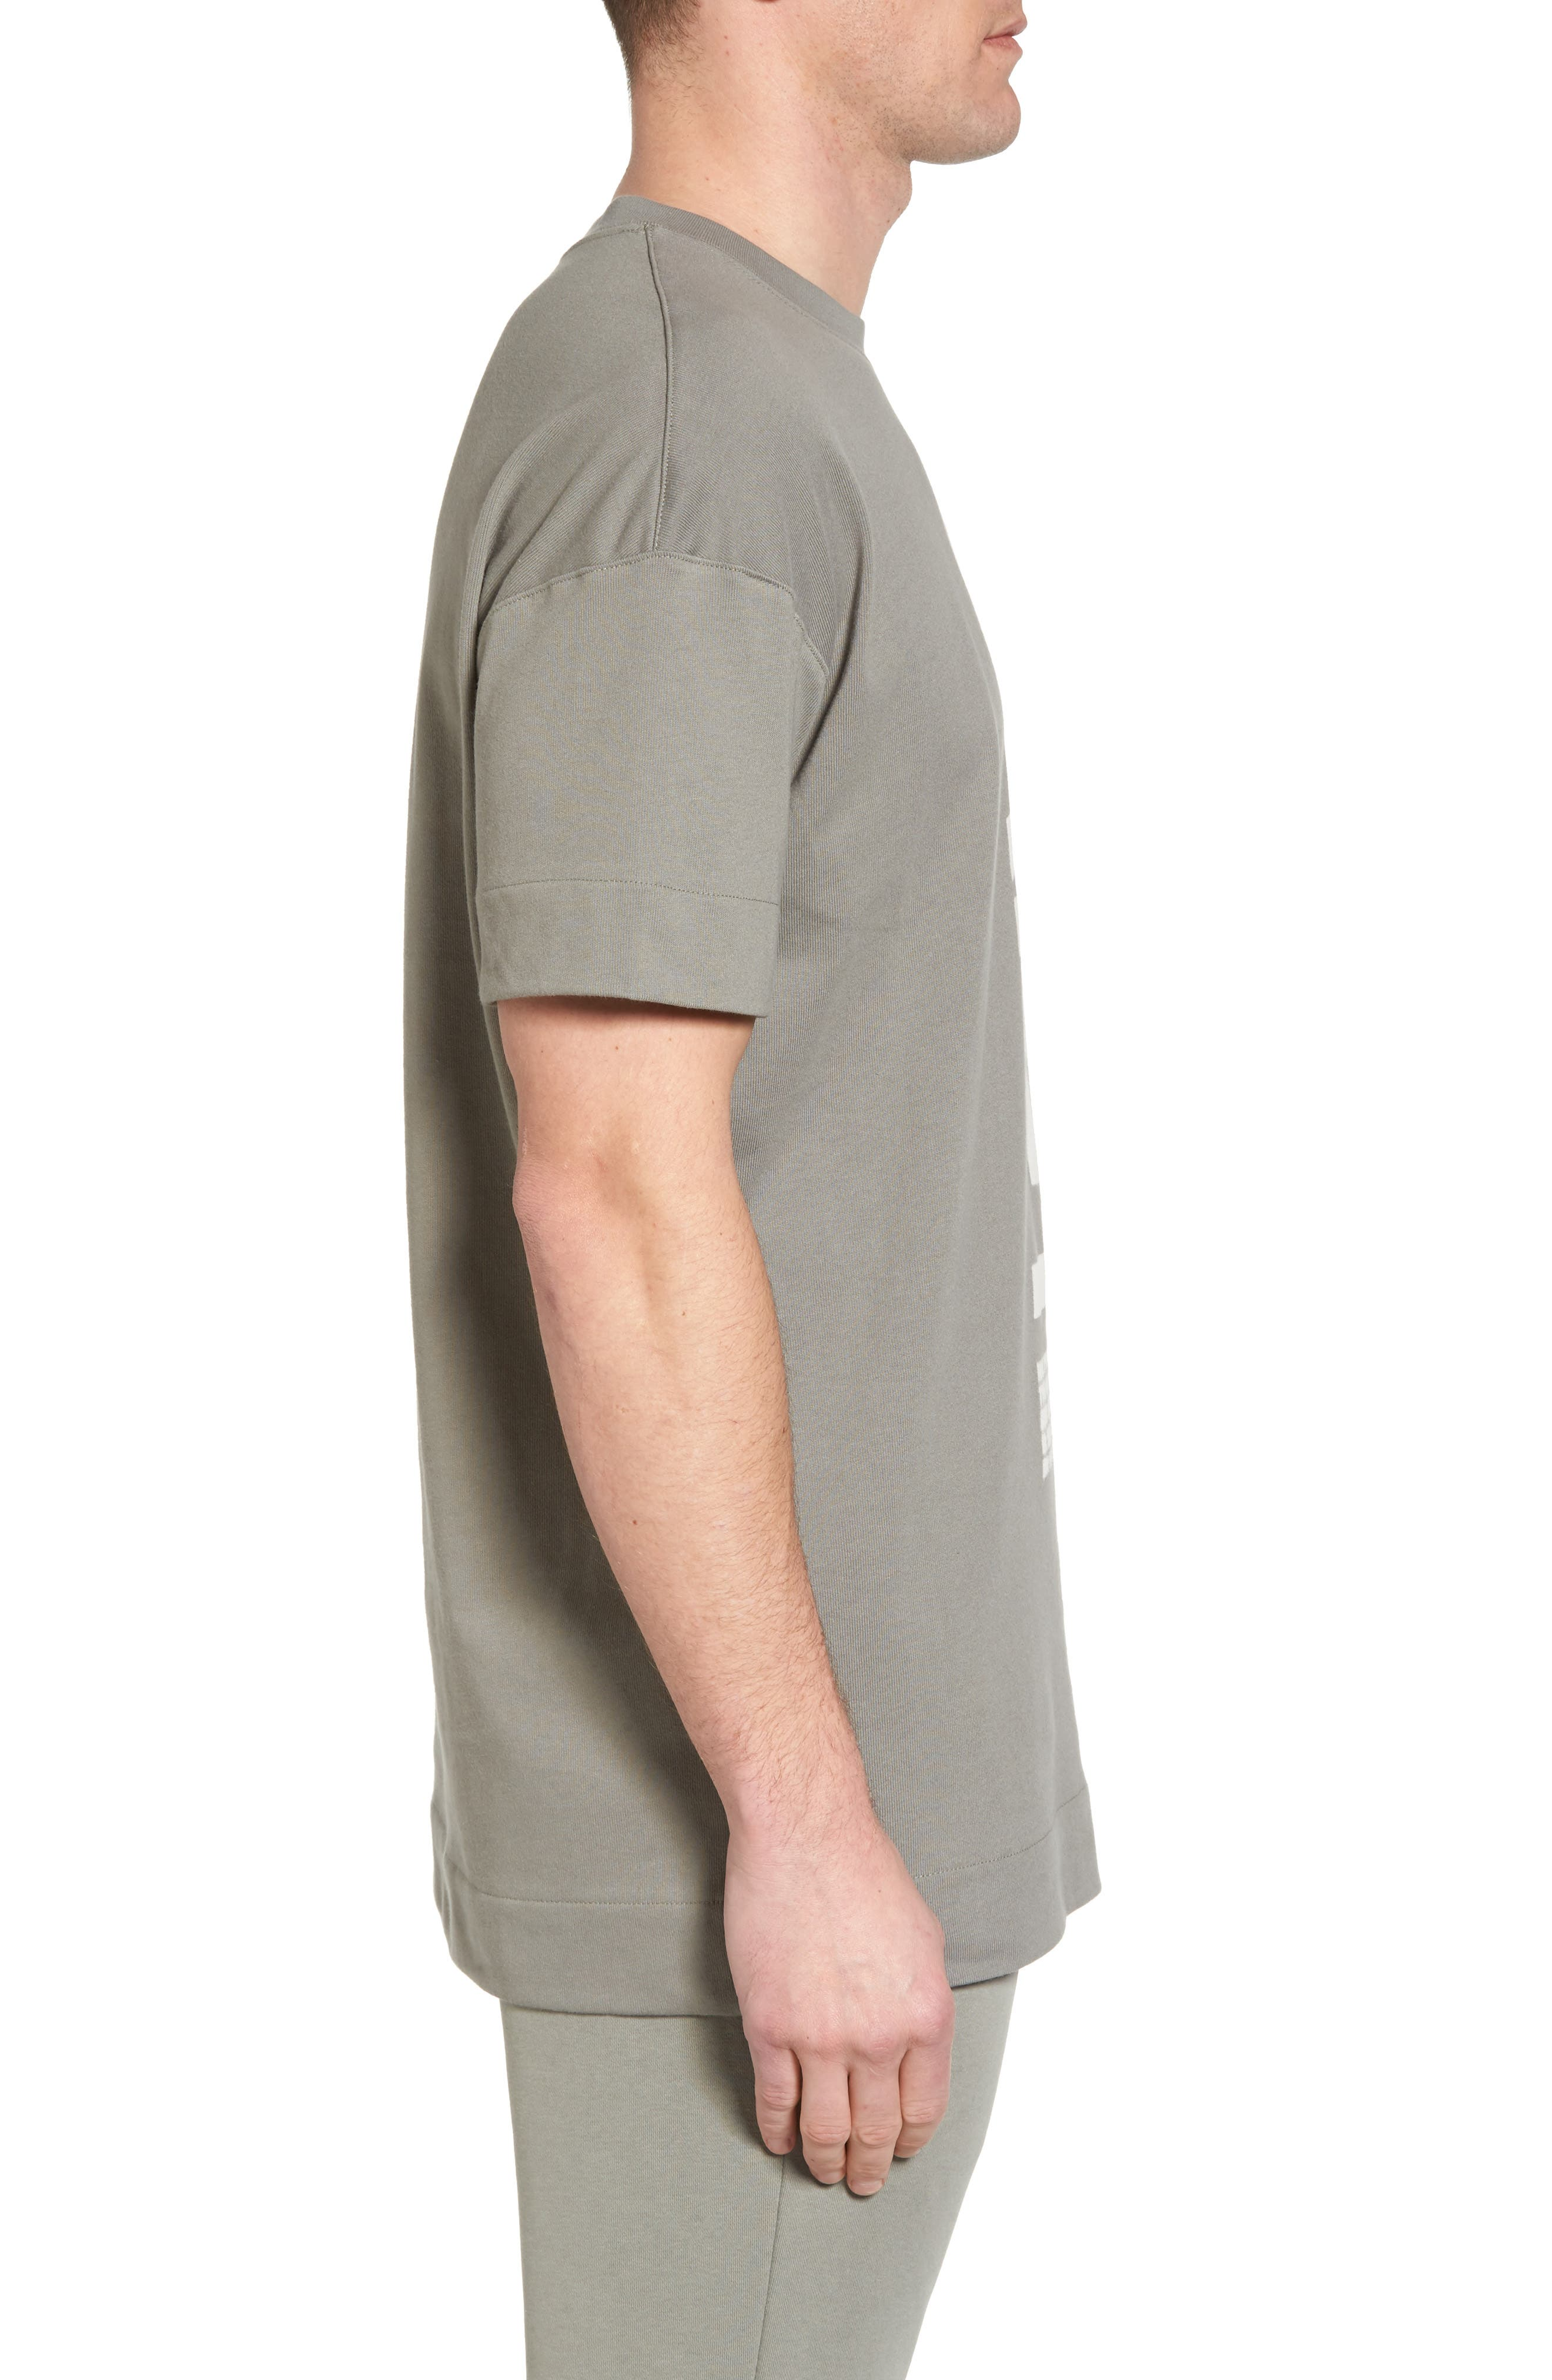 NSW Heavyweight AF-1 T-Shirt,                             Alternate thumbnail 3, color,                             Neutral Olive/ Medium Olive